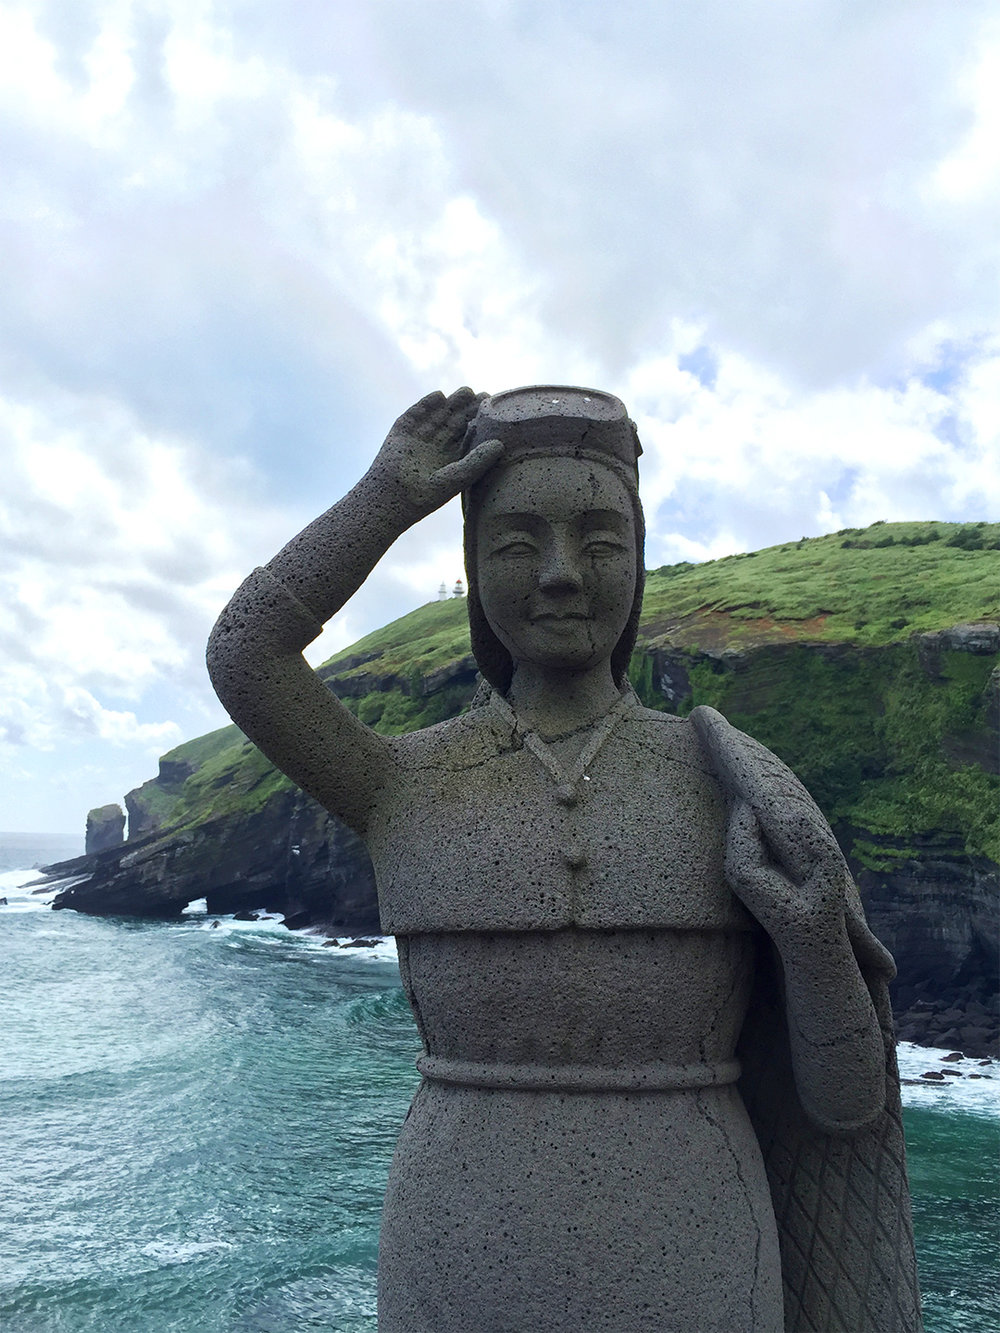 "The haenyeo ""sea woman"" is an icon of Jejudo Island. These female divers have been diving for seafood for centuries and represent the matriarchal society that has developed on the island."